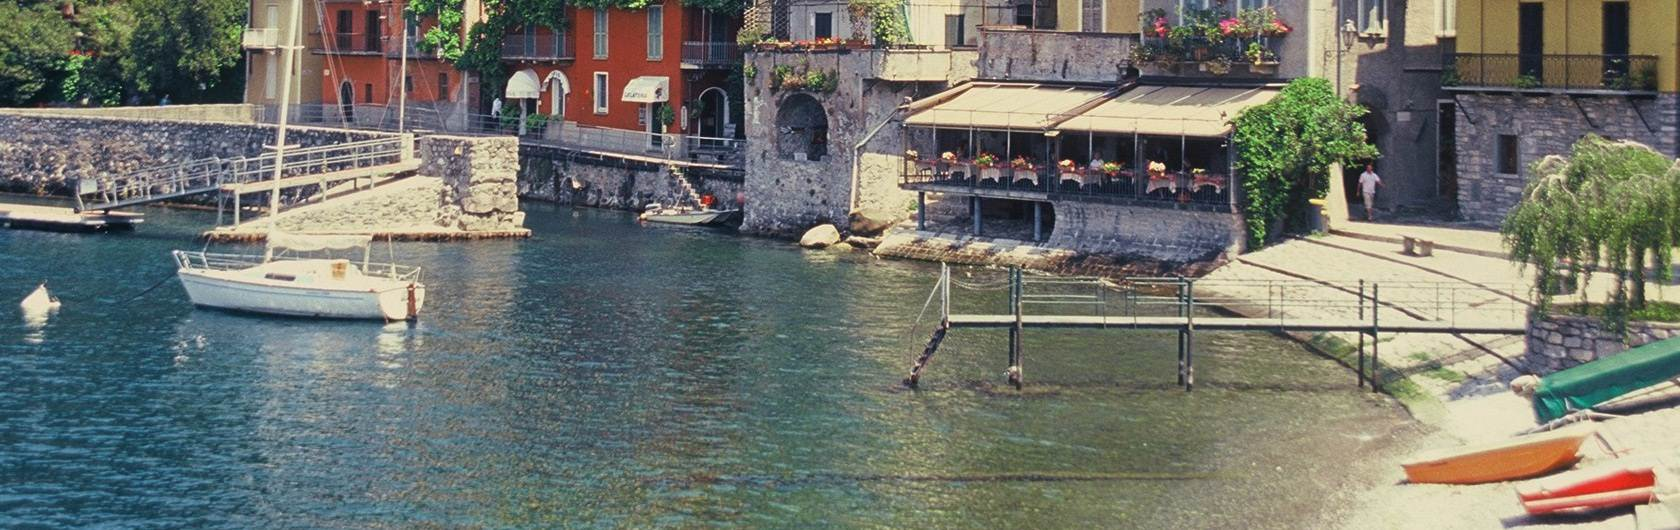 1. Northern Italy: Lake Como, 7 day in Bellagio and the central lake.